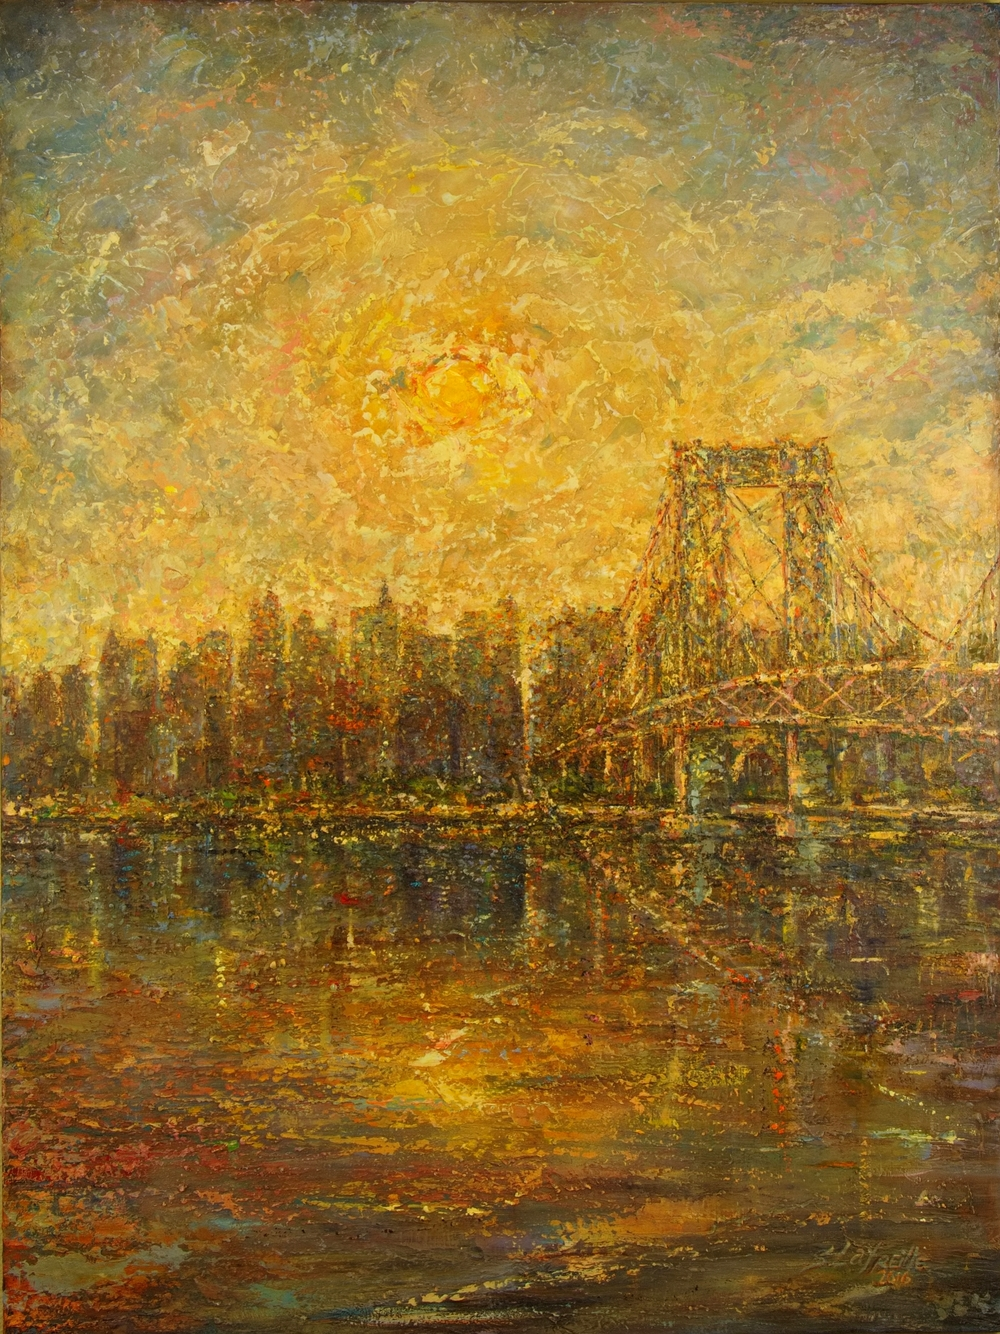 Williamsburg Bridge at Sunset 3